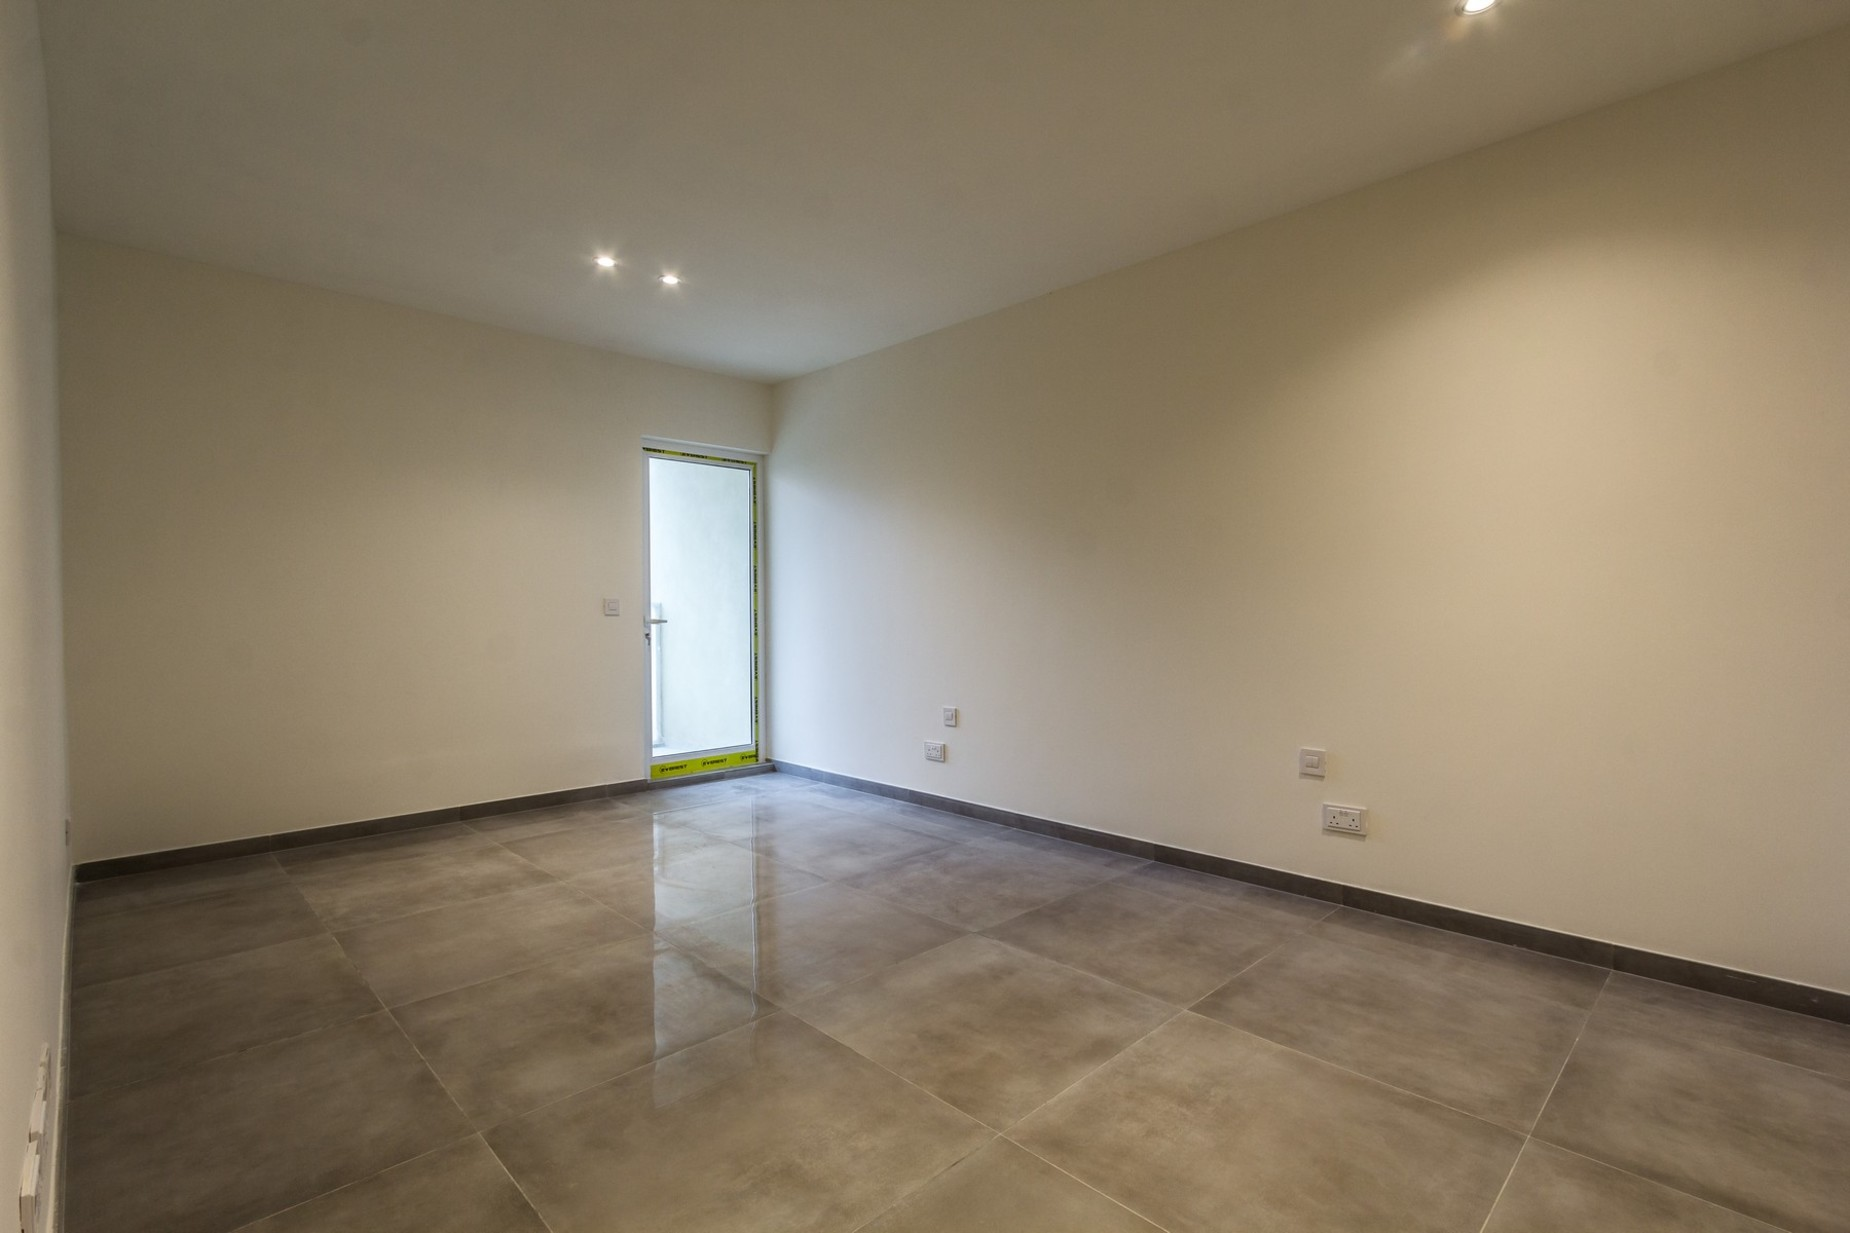 3 bed Apartment For Sale in St Paul's Bay, St Paul's Bay - thumb 11